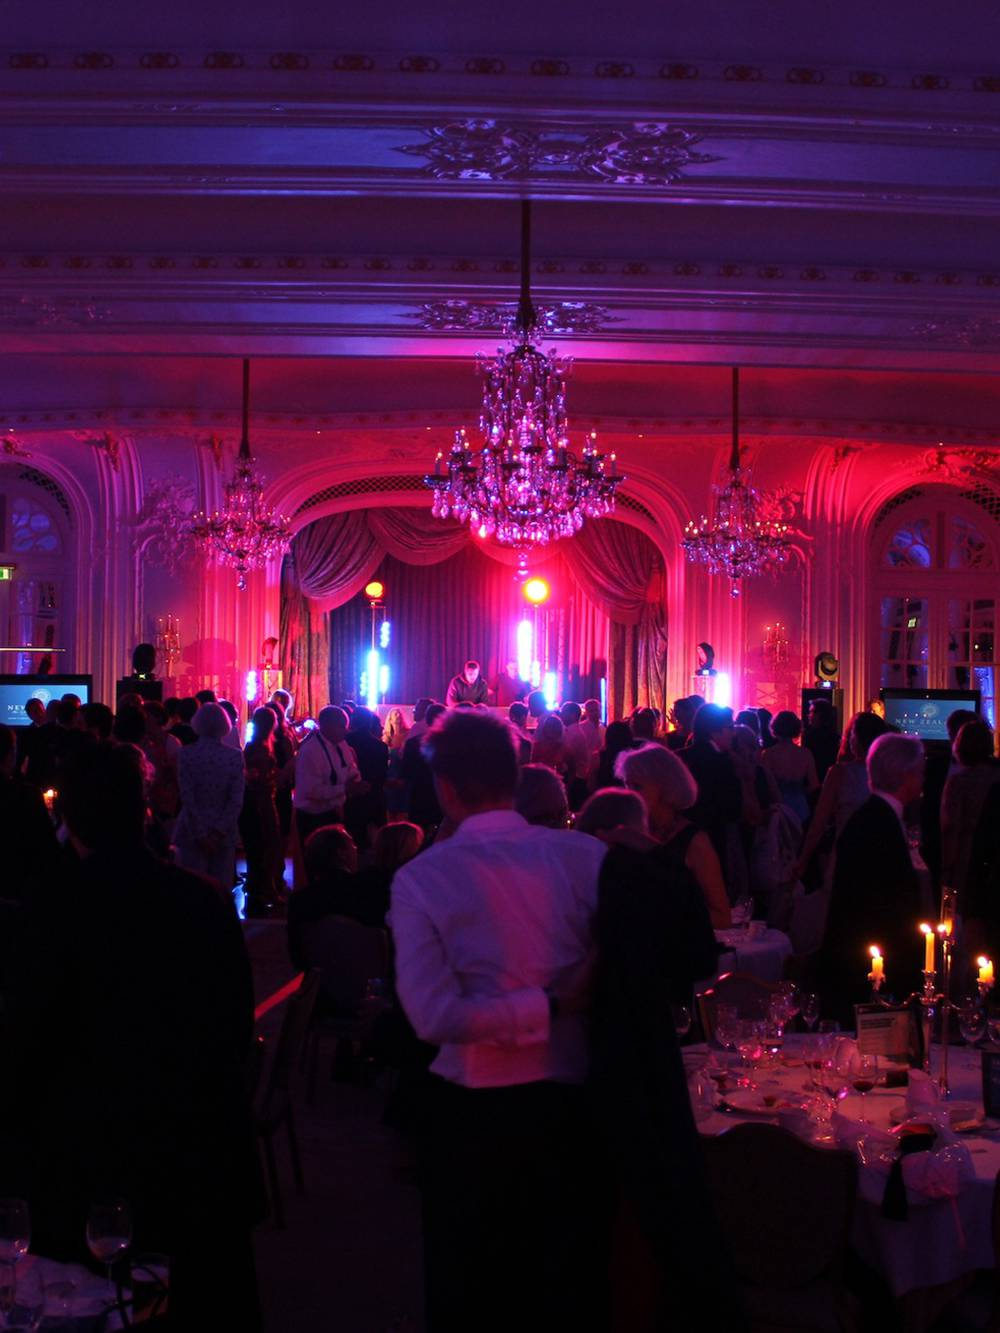 Audio Visual for a Gala Dinner Production at The Savoy Hotel London